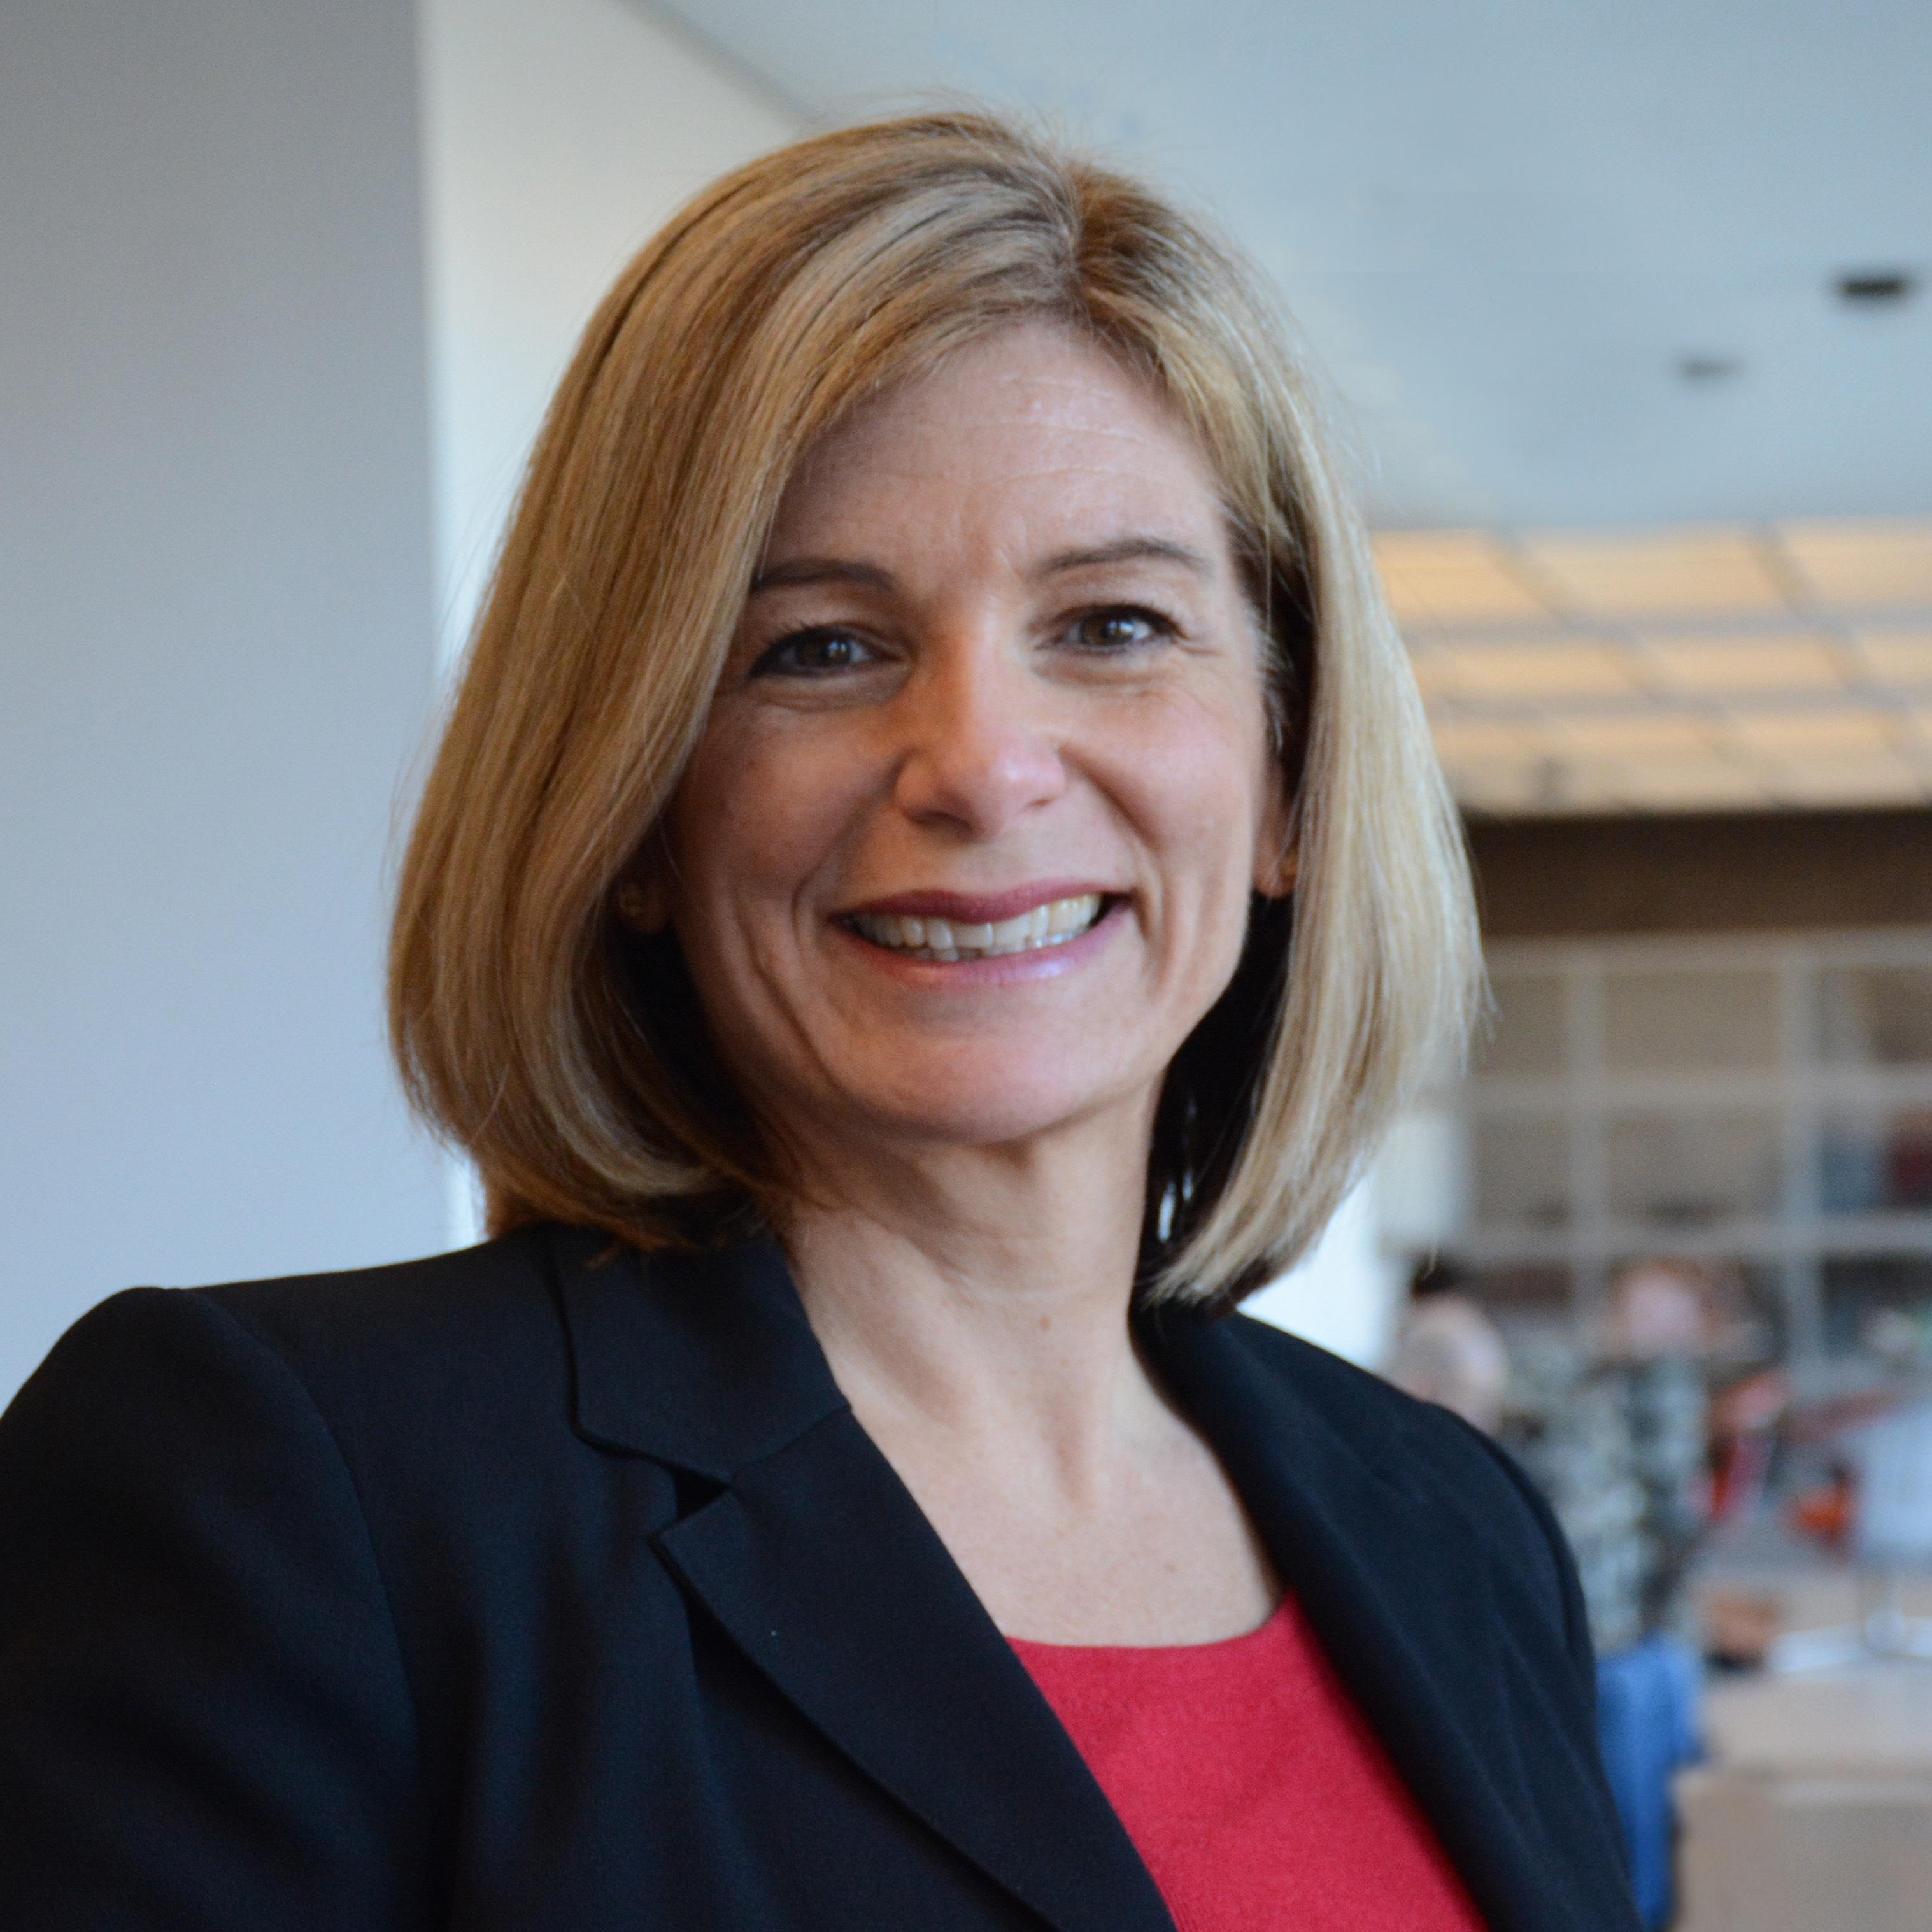 Laura Lindenfeld Appointed Dean of Journalism School at Stony Brook University